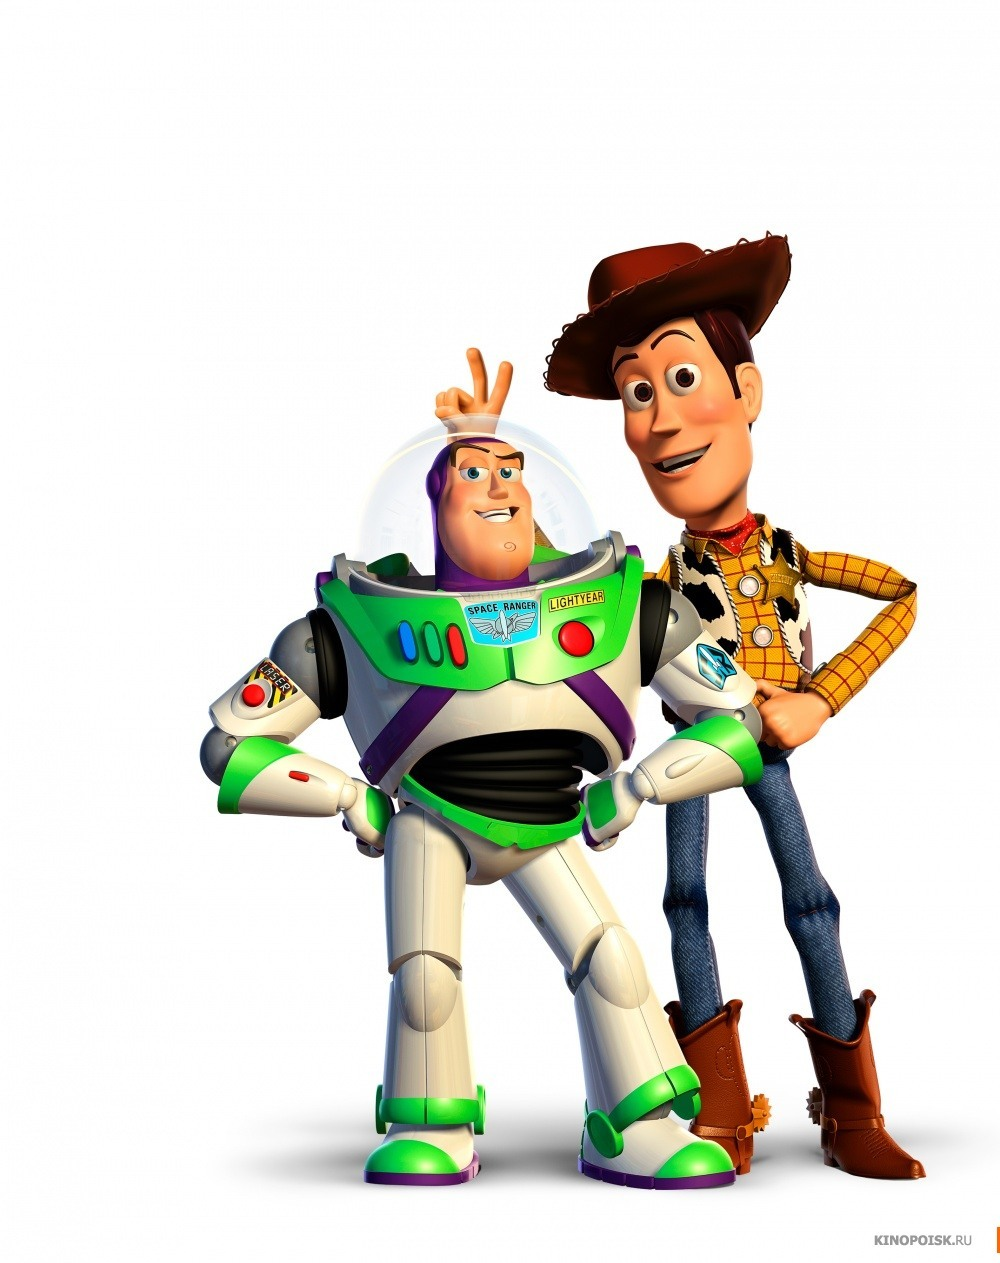 Toy Story Cracked Magazine: Toy Story 4 Is Coming In 2017